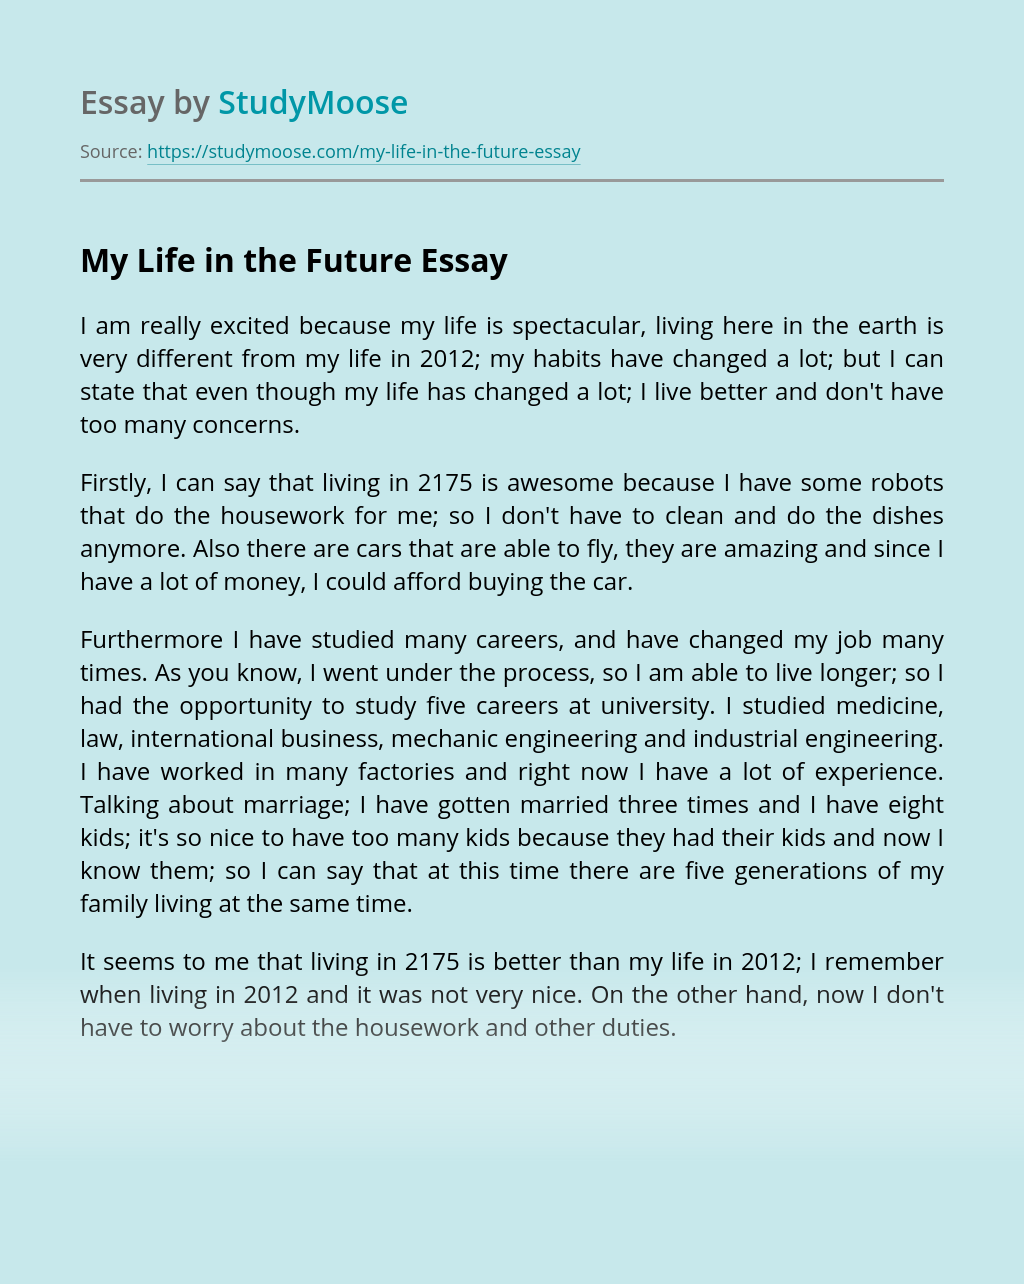 Essay about my future life